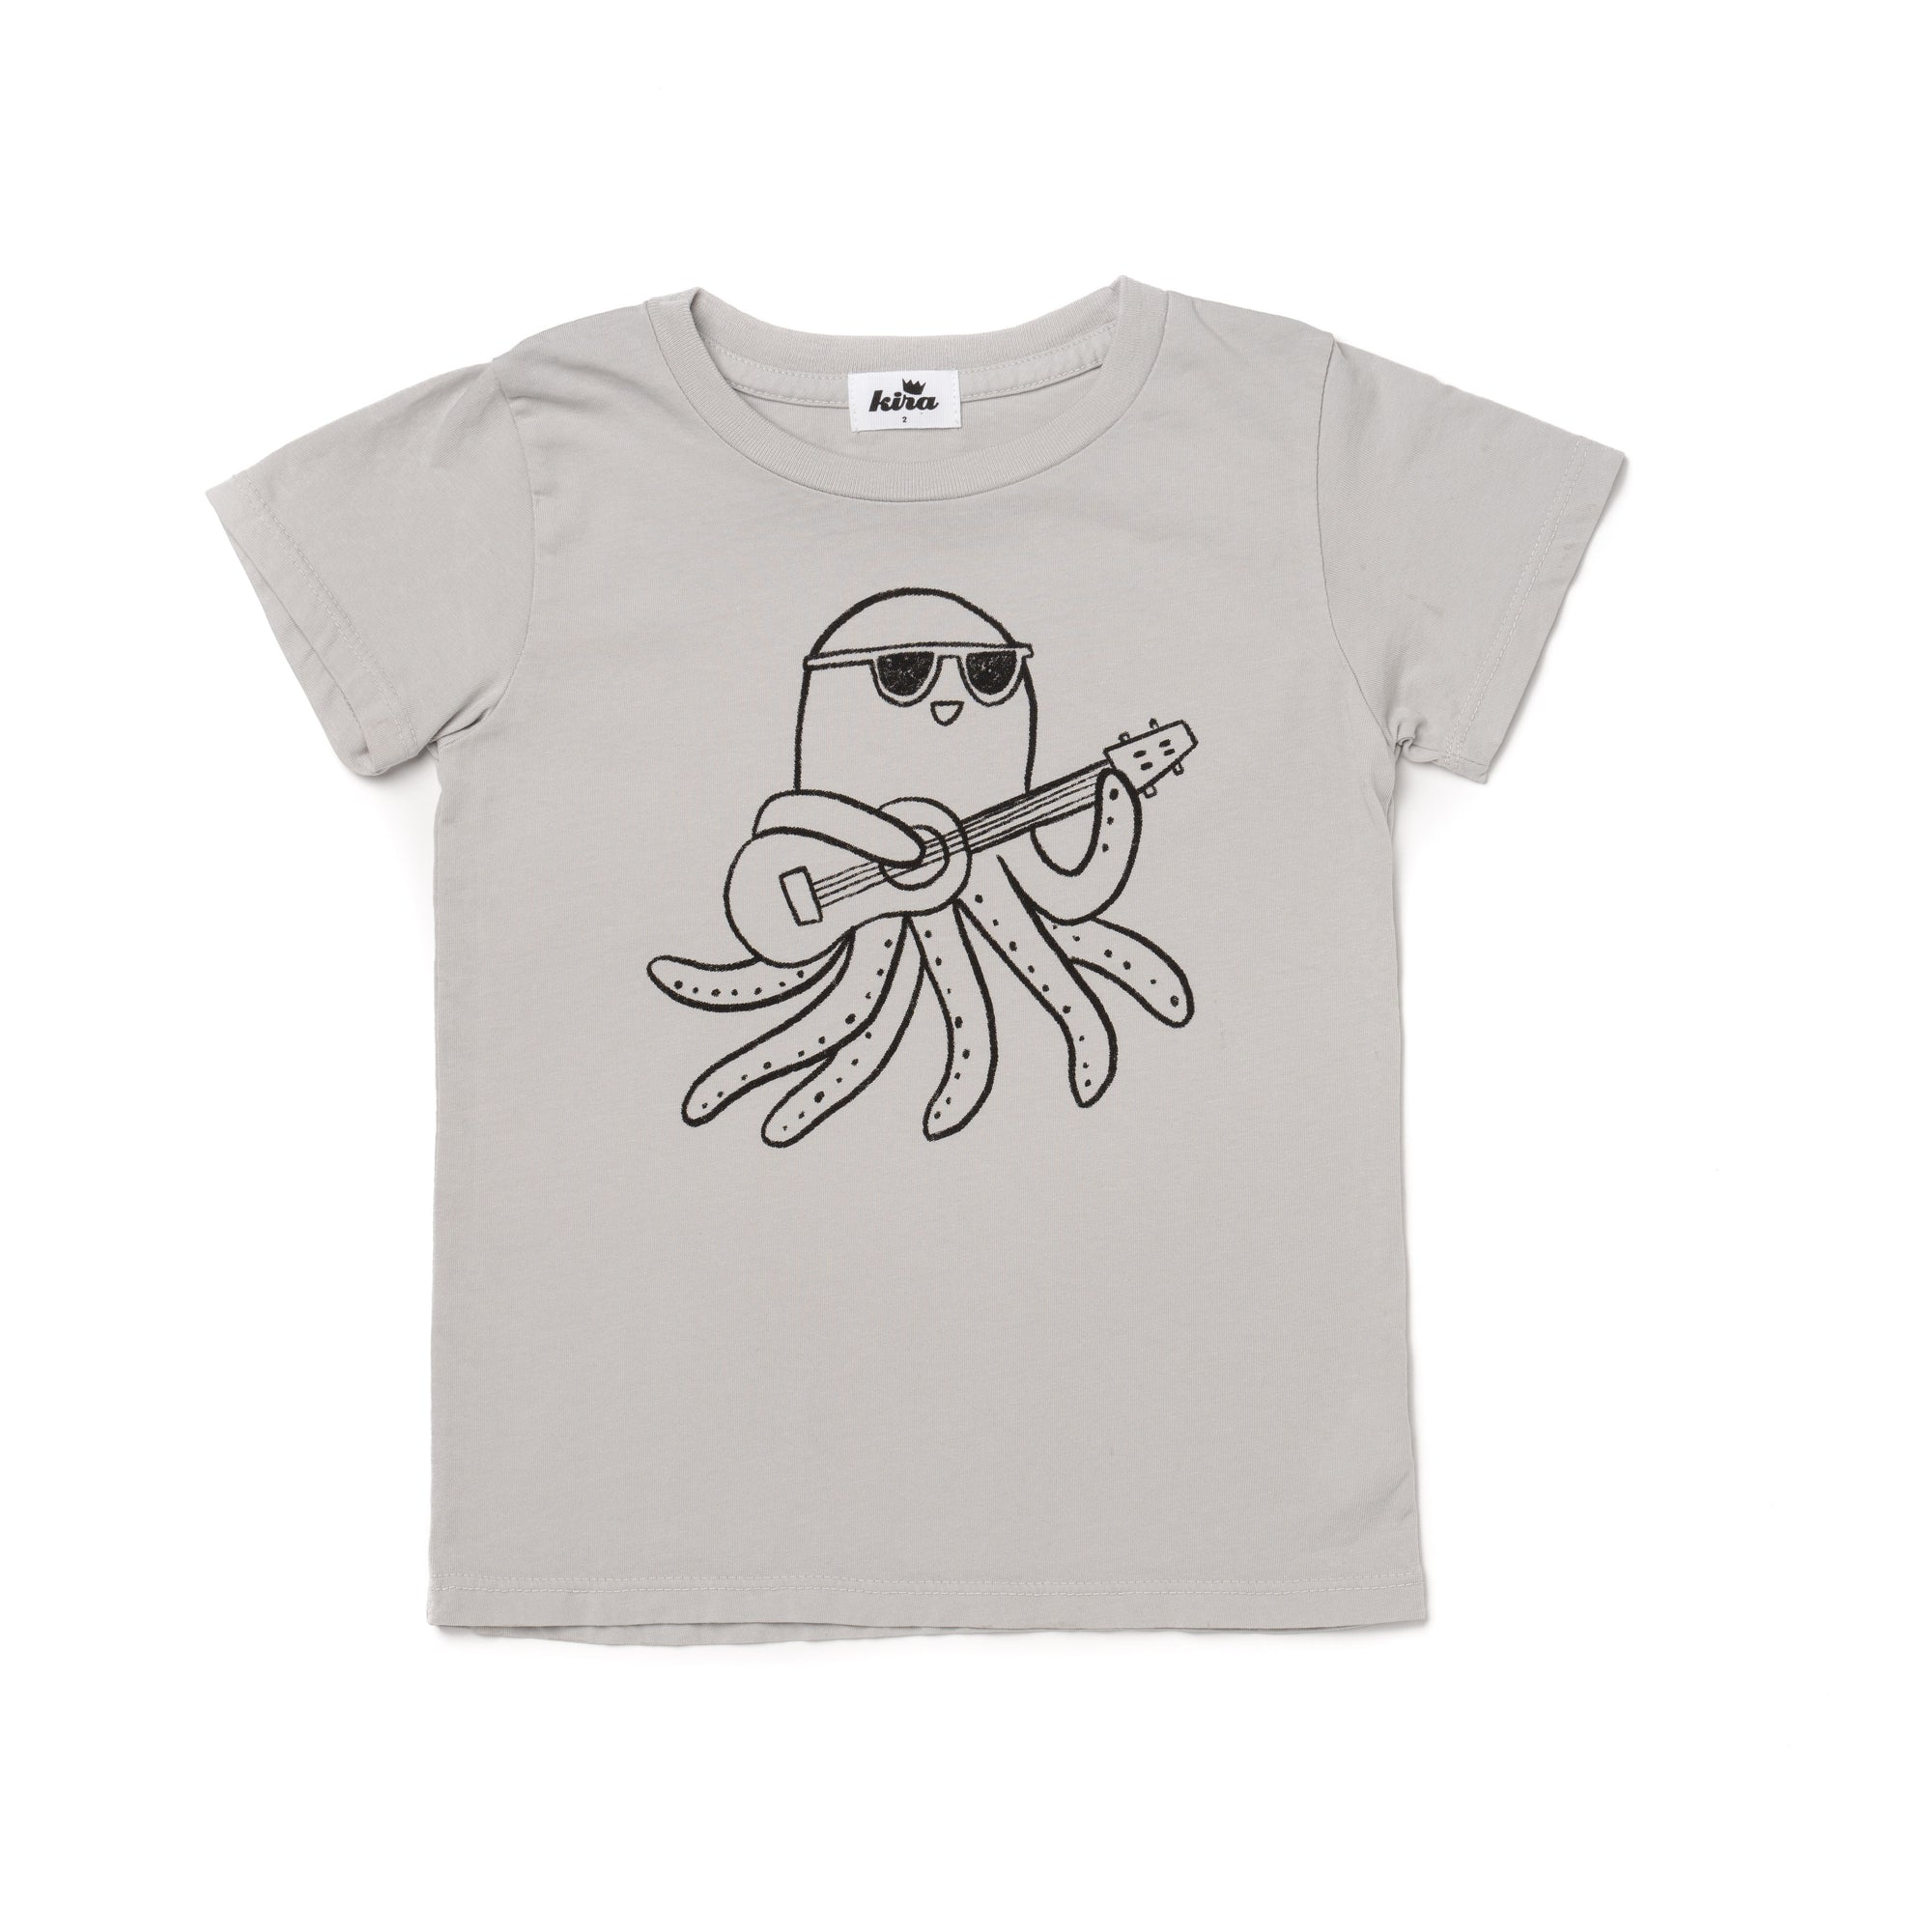 Ukulele Octopus Graphic Short Sleeve T-shirt, Light Grey